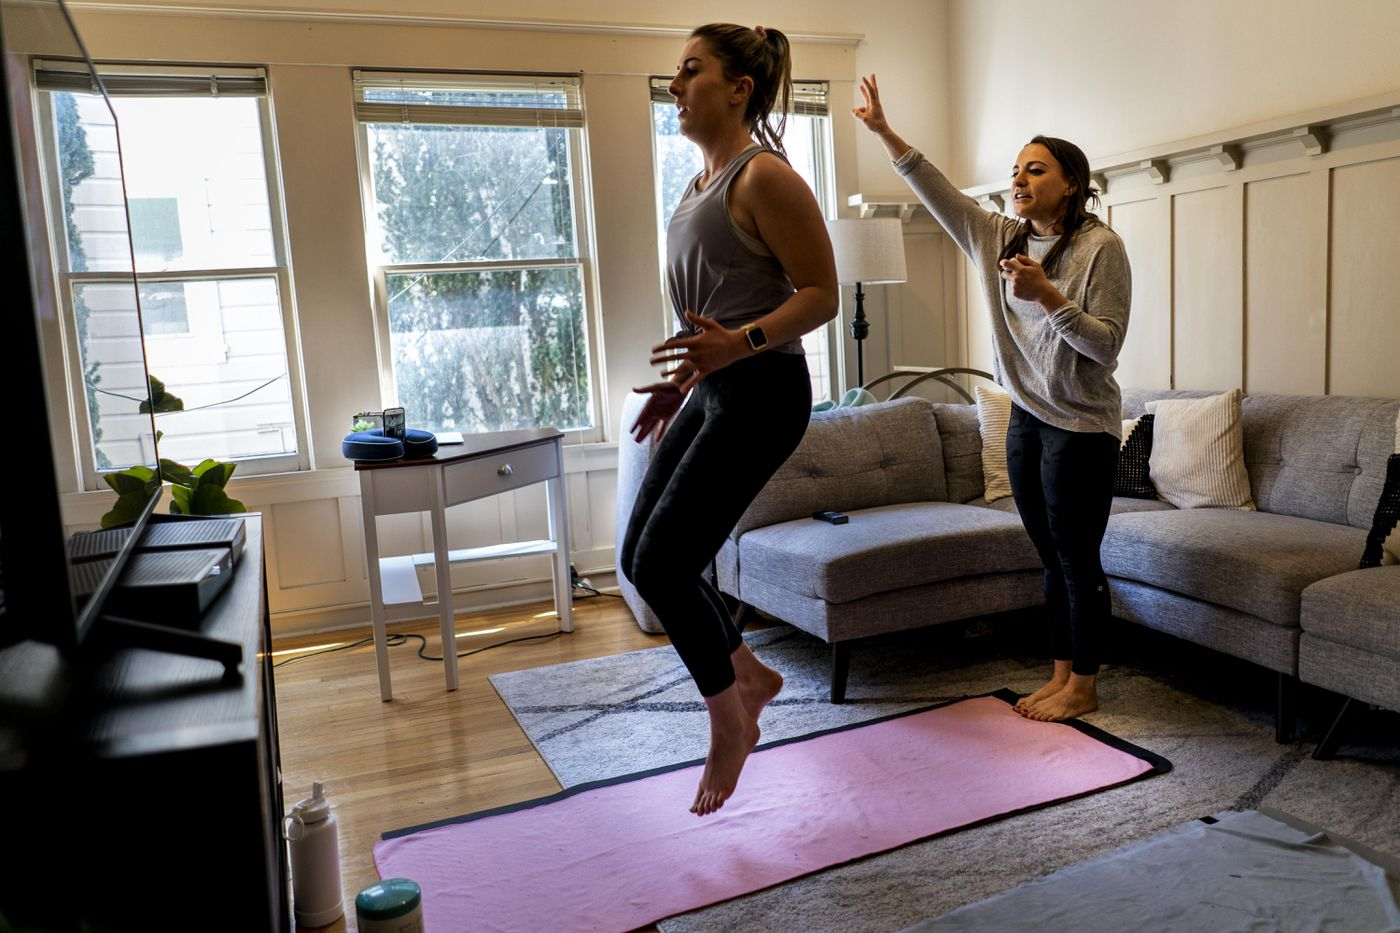 Pilates instructor Carley Henning teaches a streaming class from her apartment March 20 in the Marina District, with help from her roommate. Washington Post photo by Melina Mara